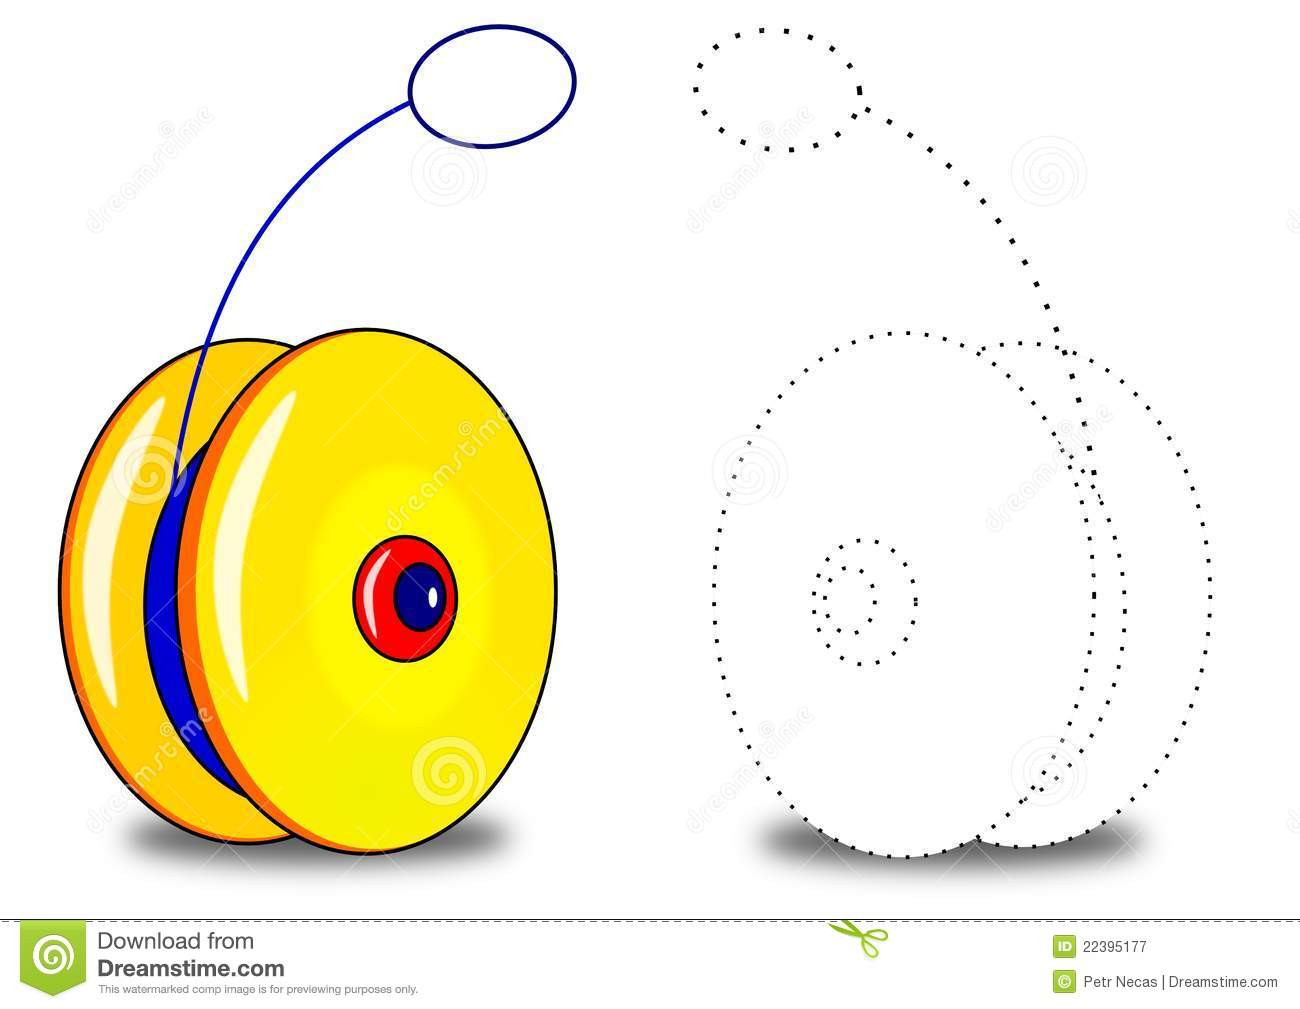 Clipart Yoyo Yo yo toy not only for